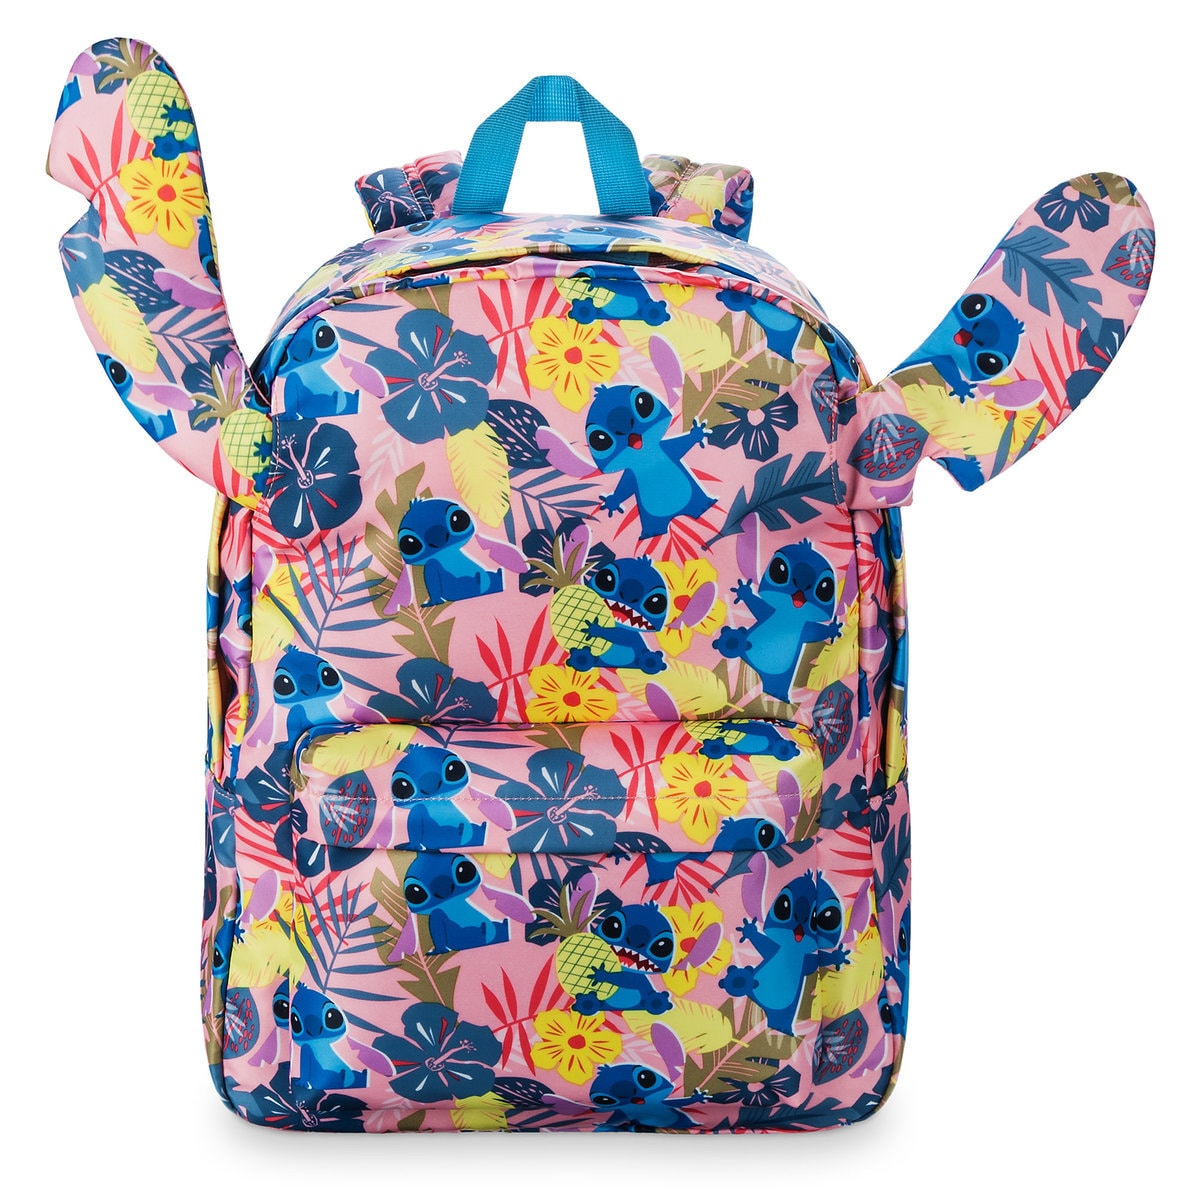 66117bf0dd3 Product Image of Stitch Tropical Ear Backpack   1